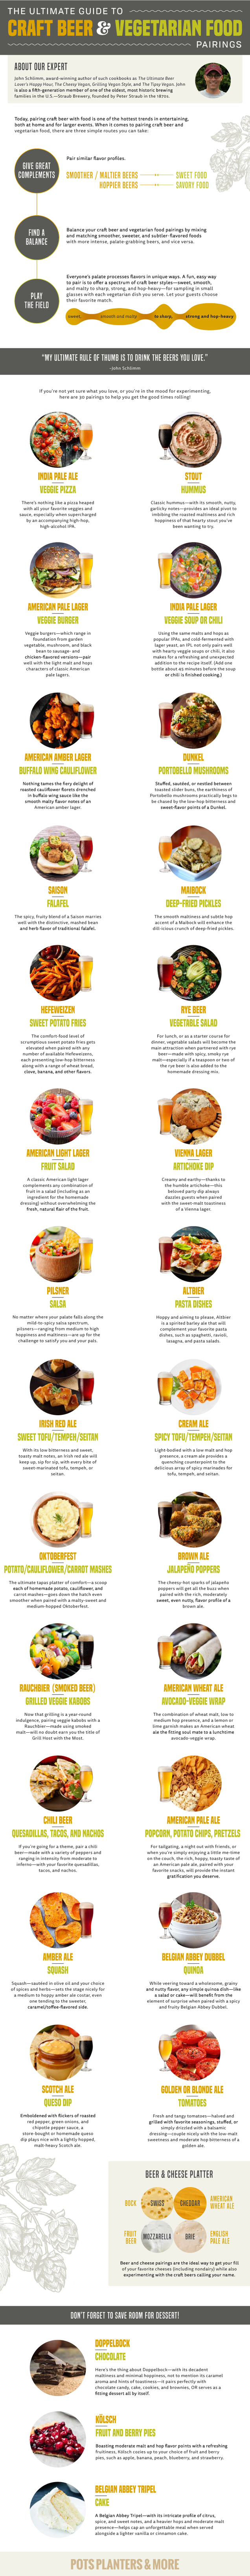 Perfectly Pair Craft Beer With Vegetarian Cuisine Using This Handy Guide